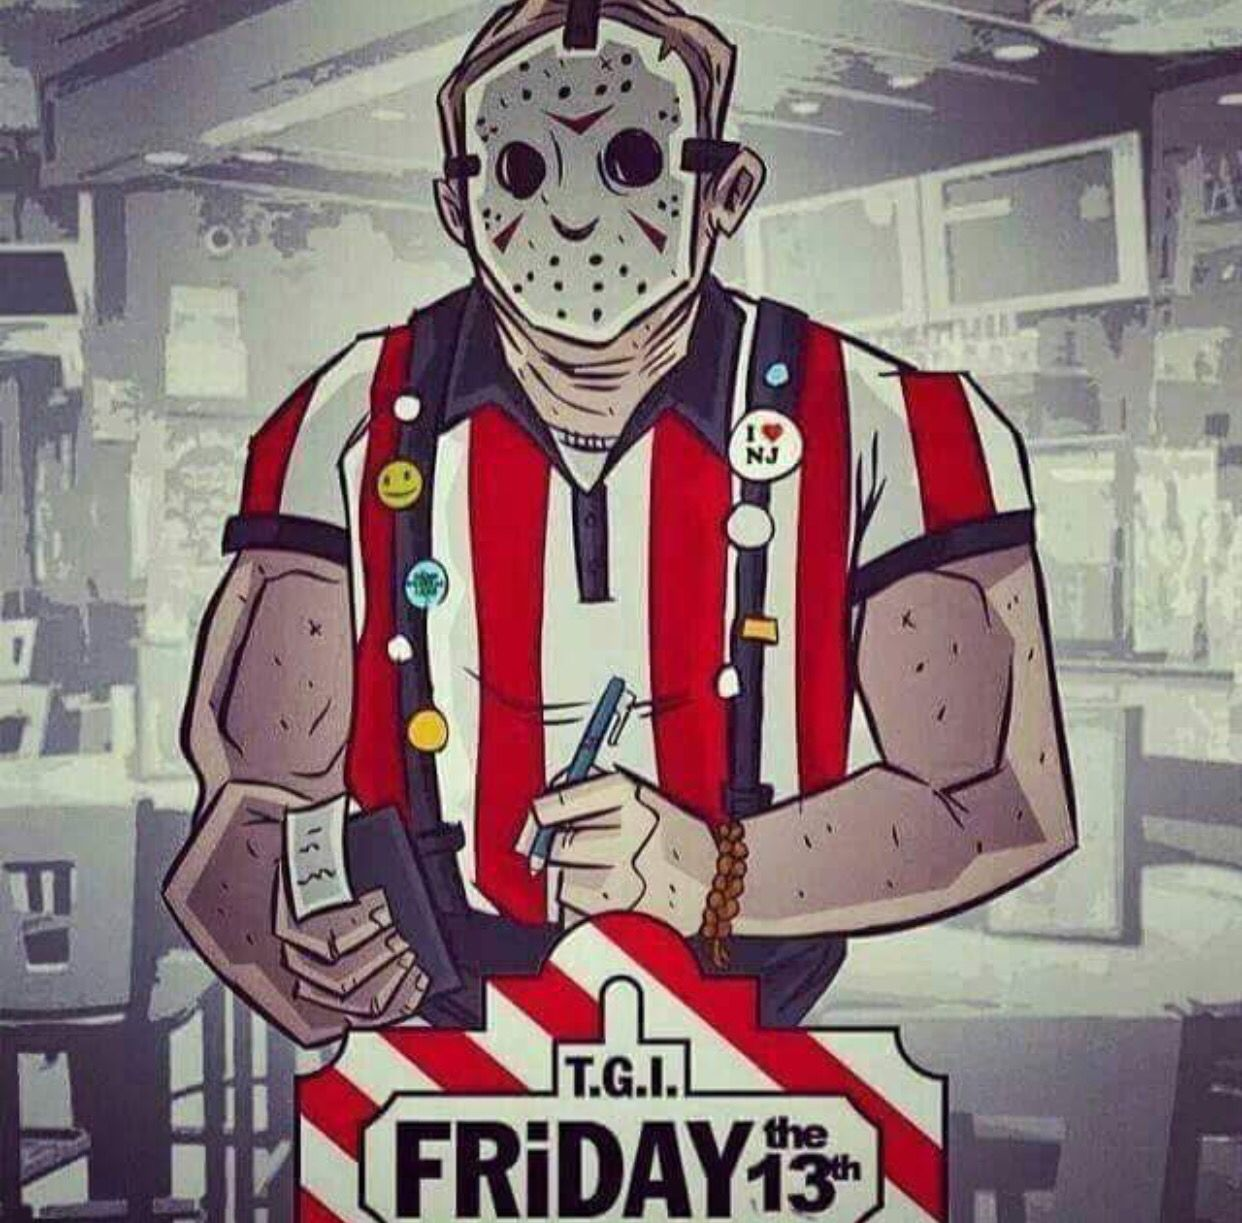 Pin on Jason Voorhees/ Friday the 13th